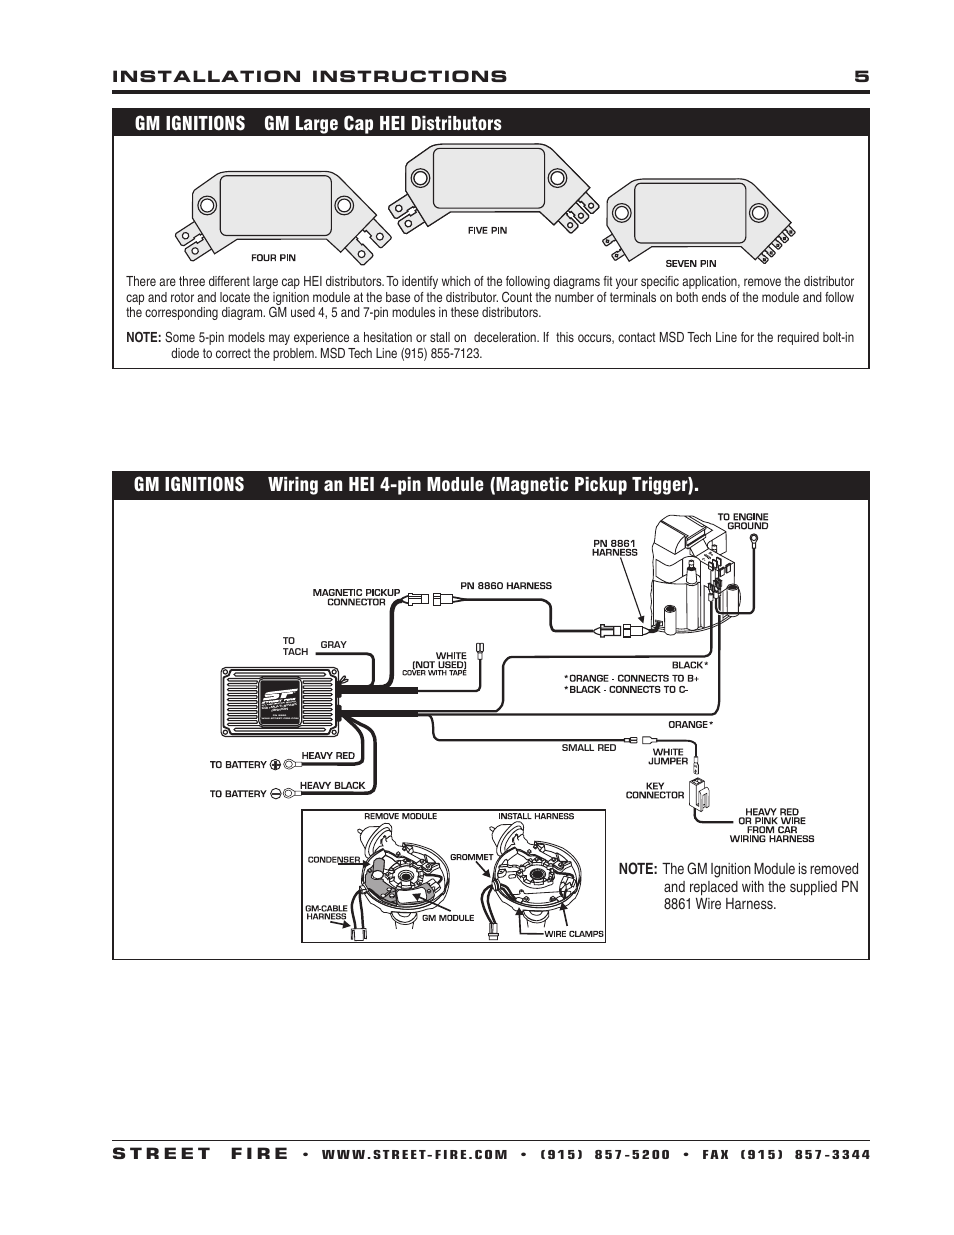 gm ignitions gm large cap hei distributors | msd 5520 street fire ignition  control installation user manual | page 5 / 12  manuals directory